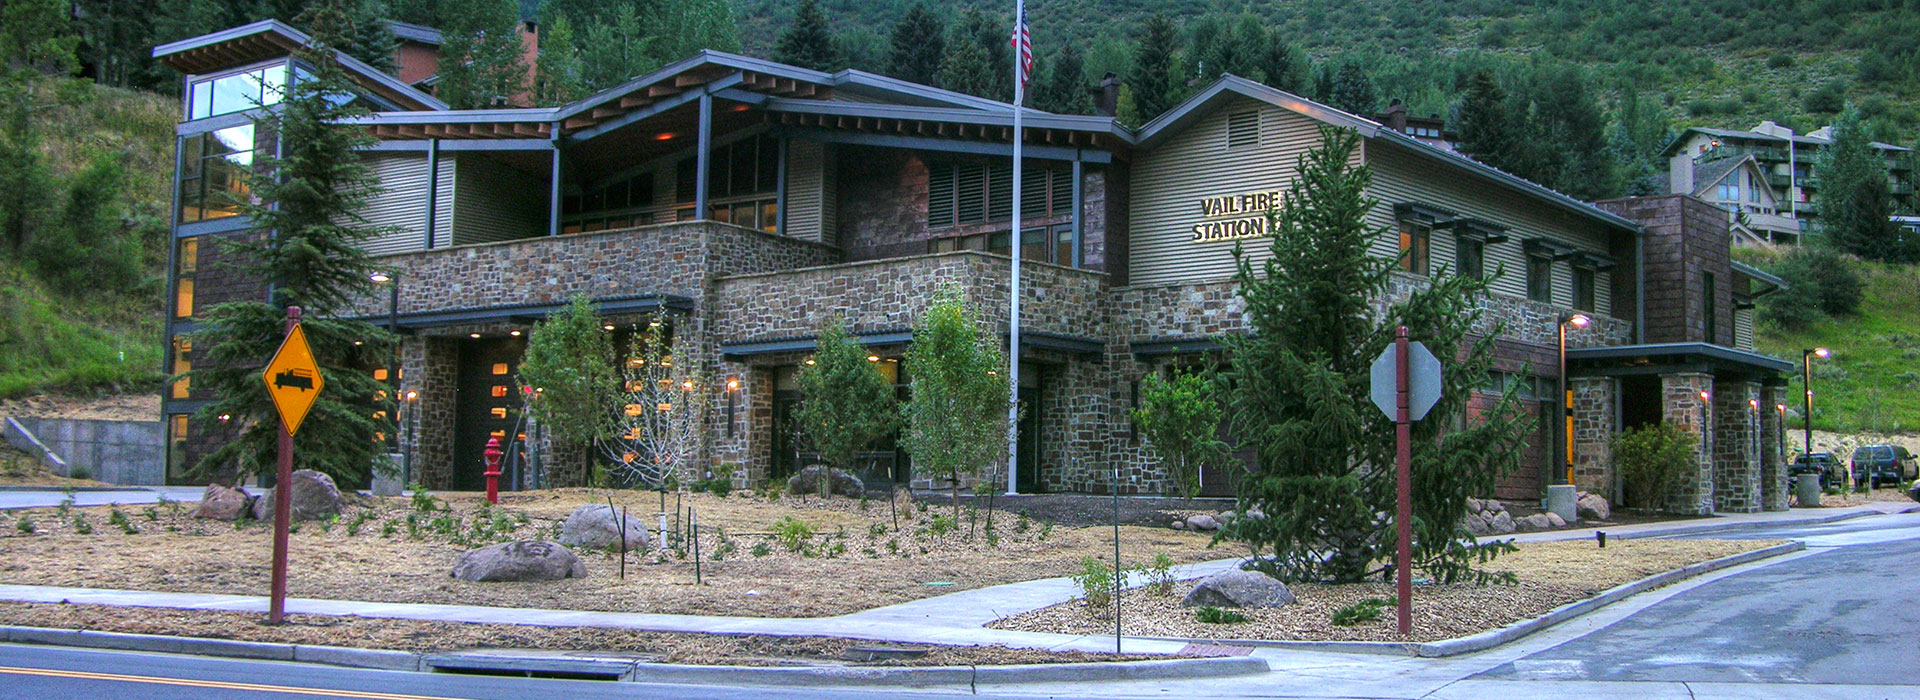 West Vail Fire Station